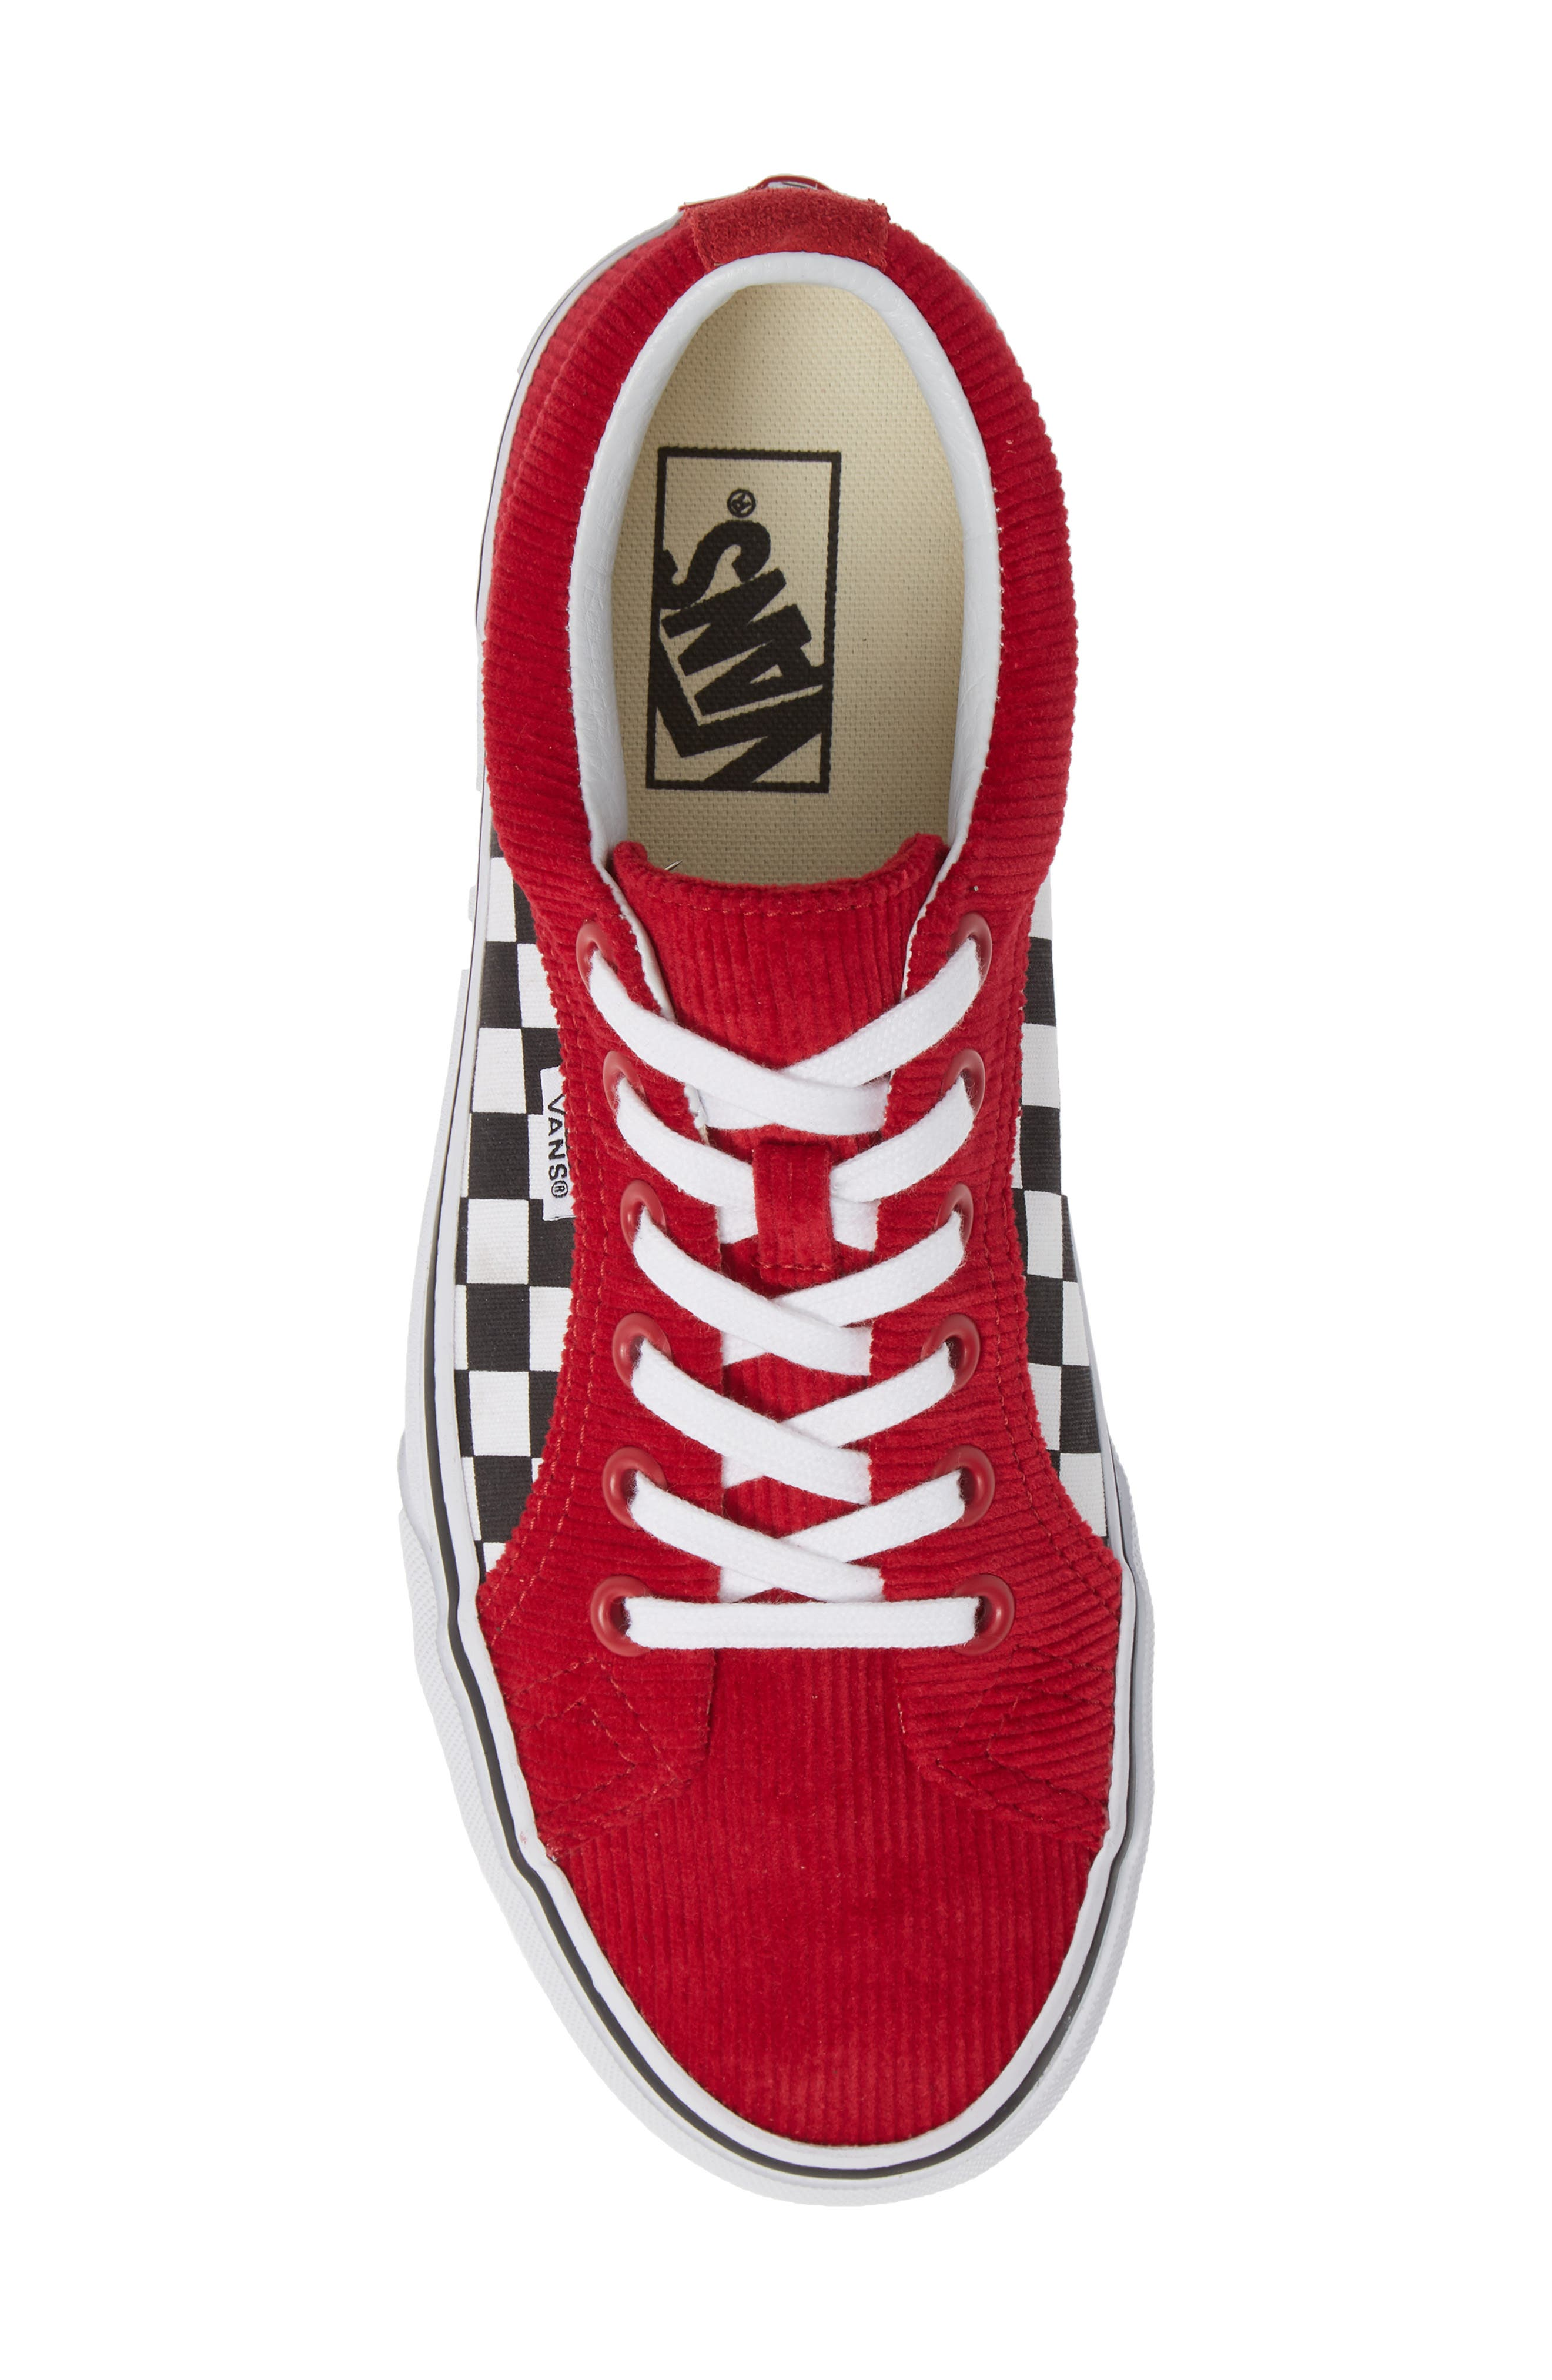 Lampin Corduroy Sneaker,                             Alternate thumbnail 5, color,                             SCOOTER/ TRUE WHITE CANVAS